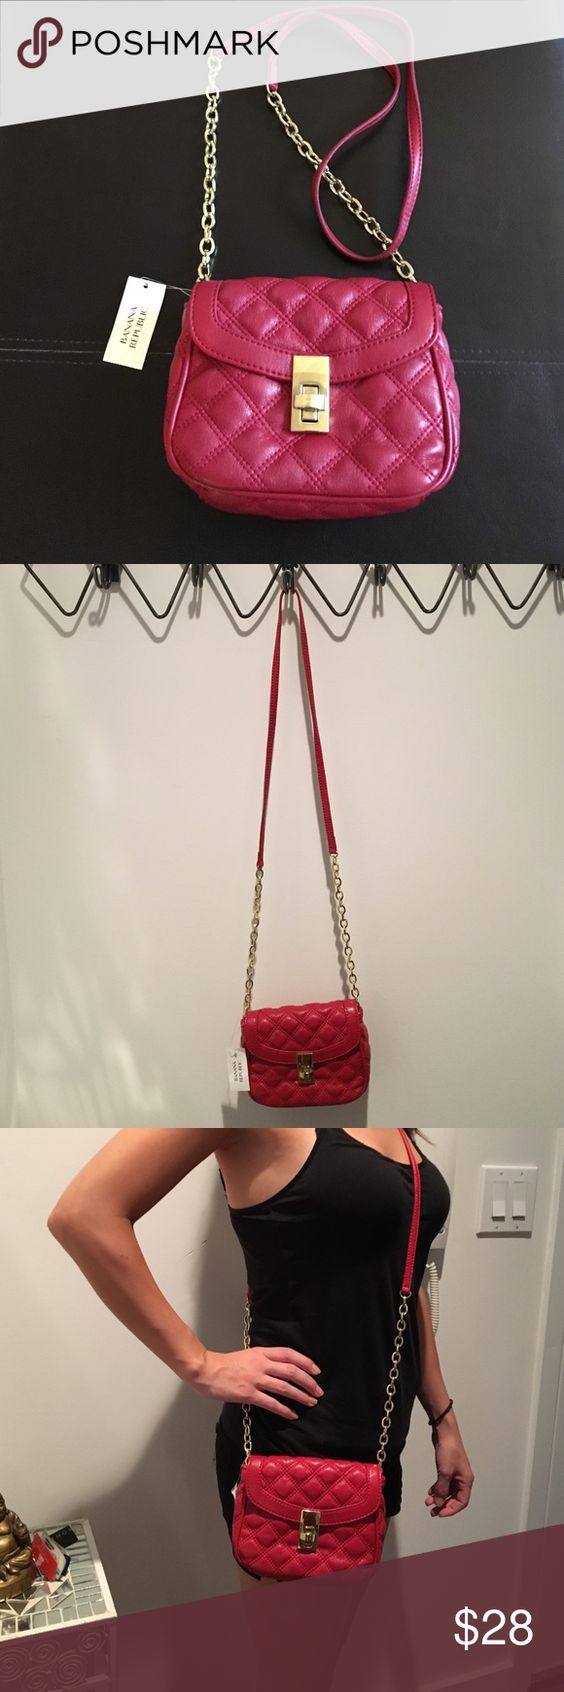 Red Quilted Banana Republic Crossbody Bag Classic and sophisticated faux leather Crossbody bag in a rich red color. New with tags but some minor scratching to the front hardware from turning the clasp. A perfect bag for fall! Banana Republic Bags Crossbody Bags